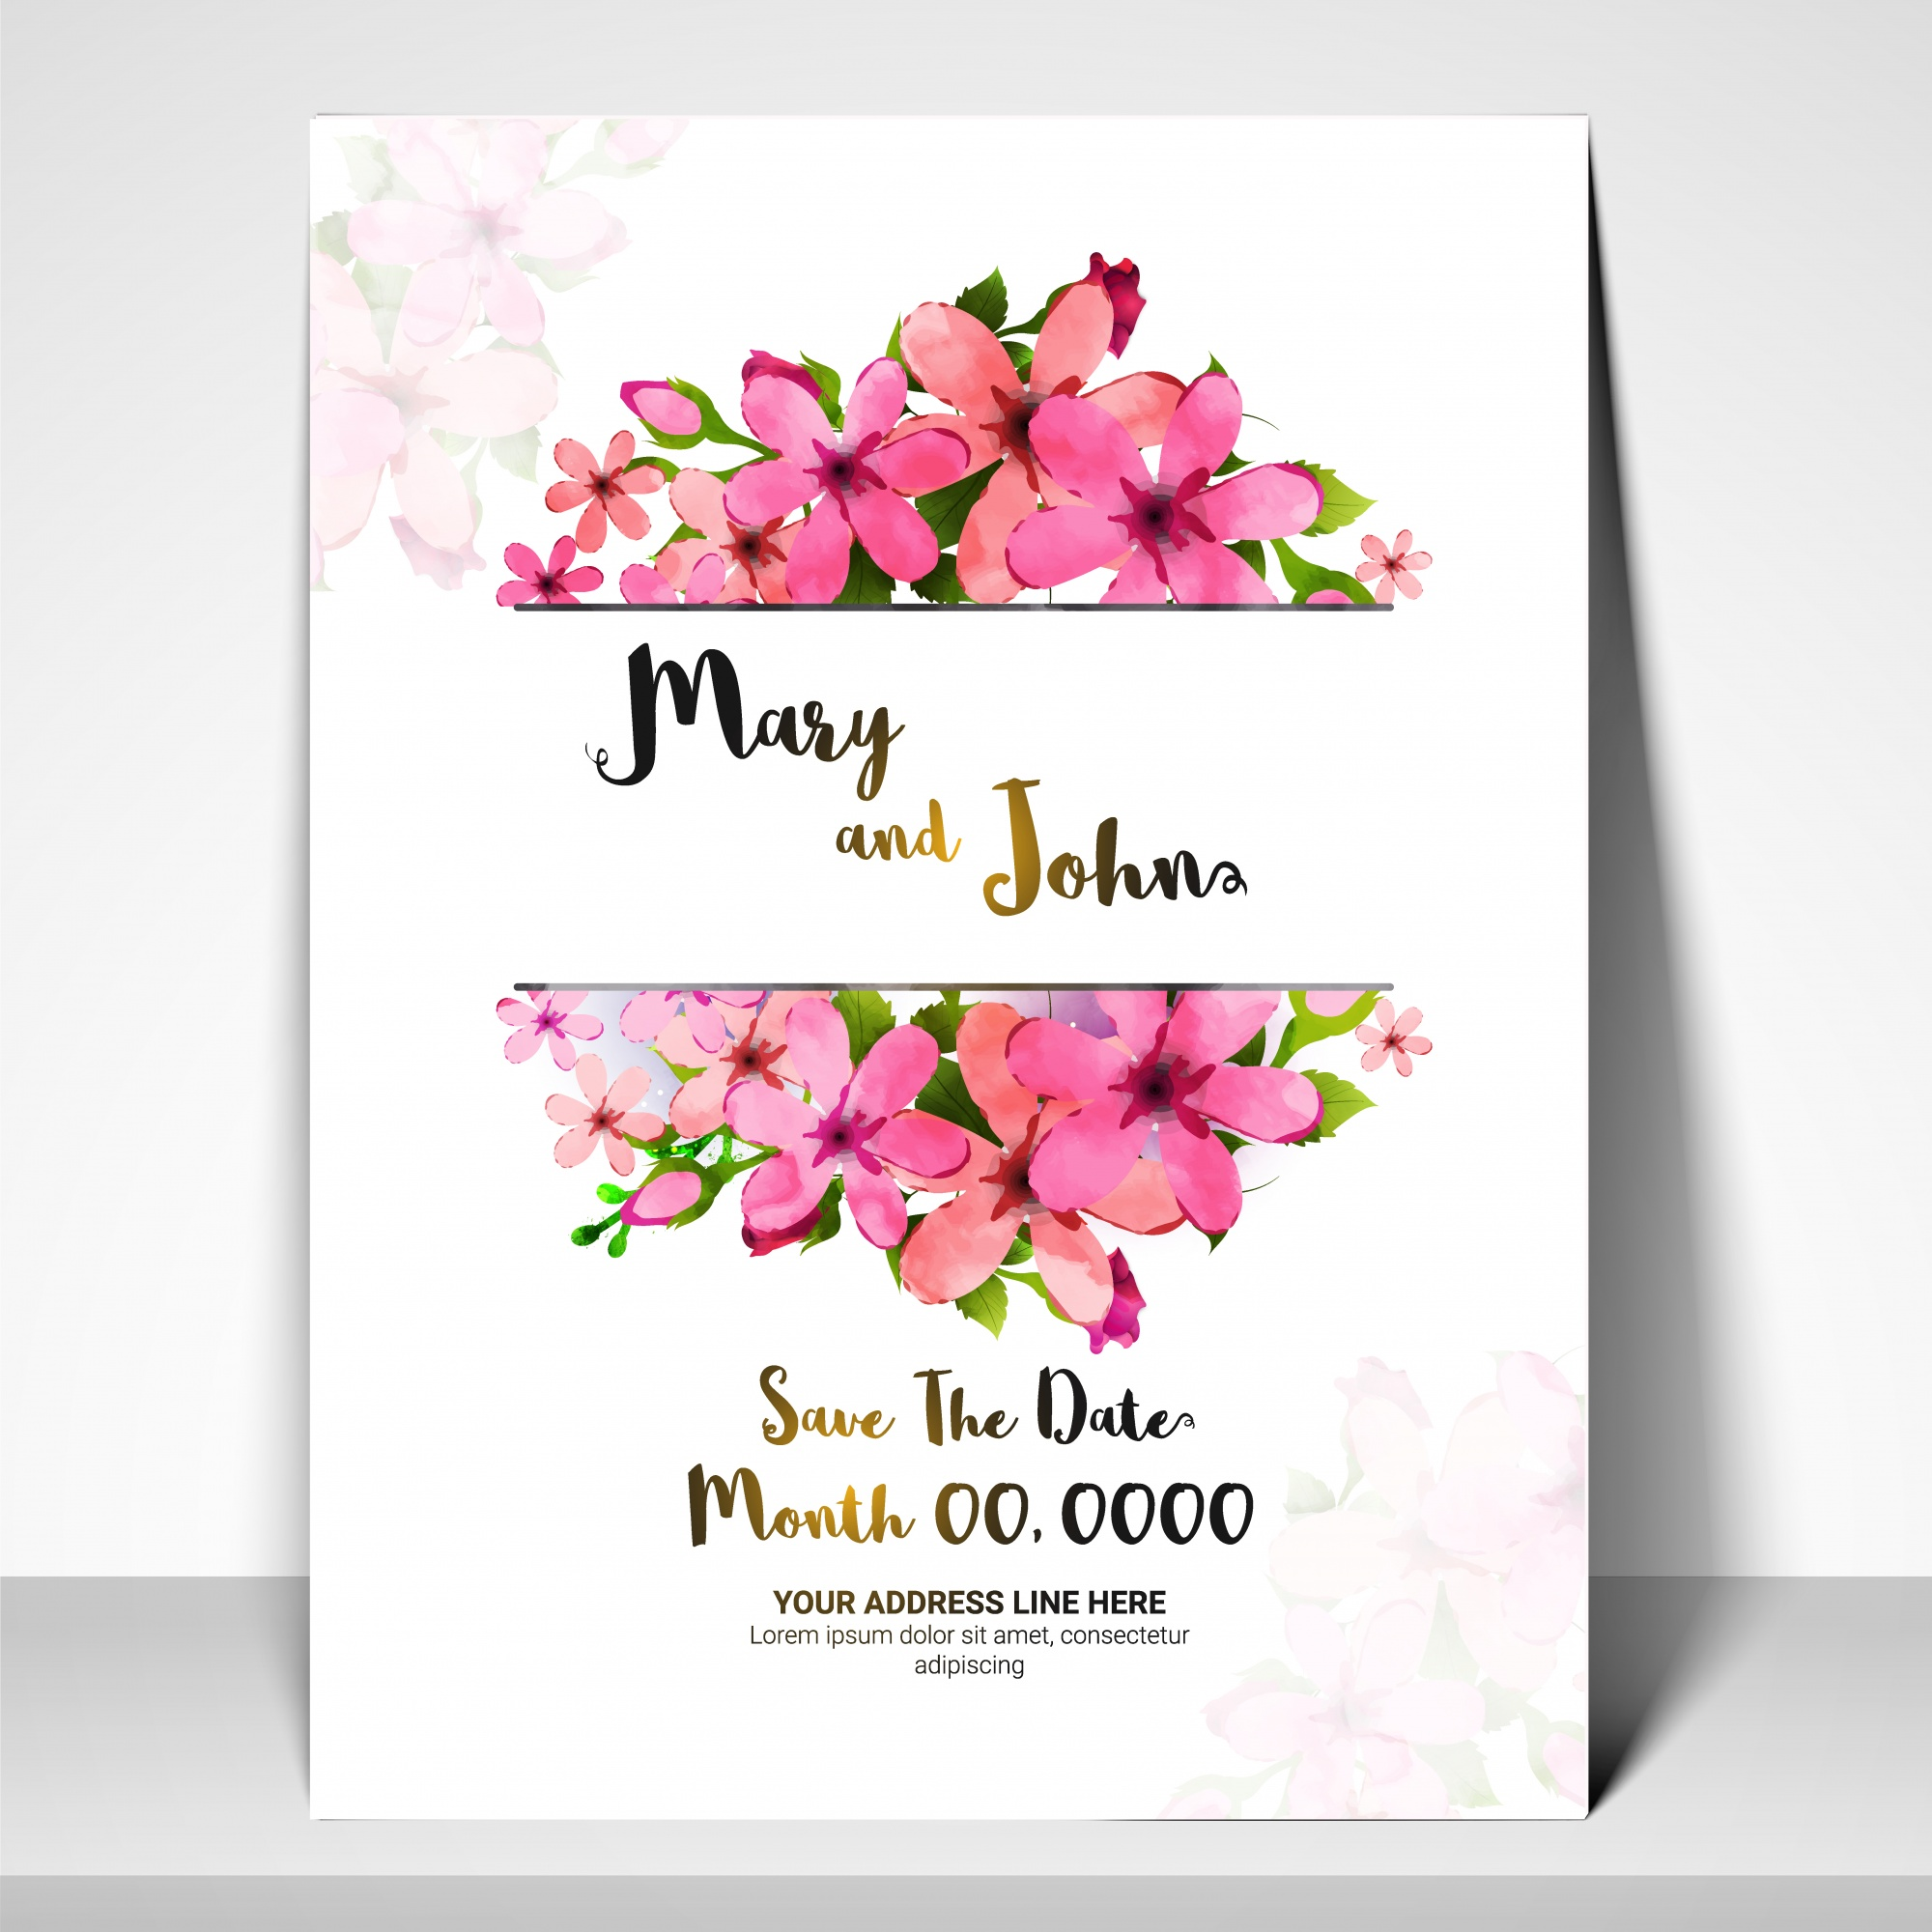 Save the Date, Wedding Invitation Card with pink flowers.